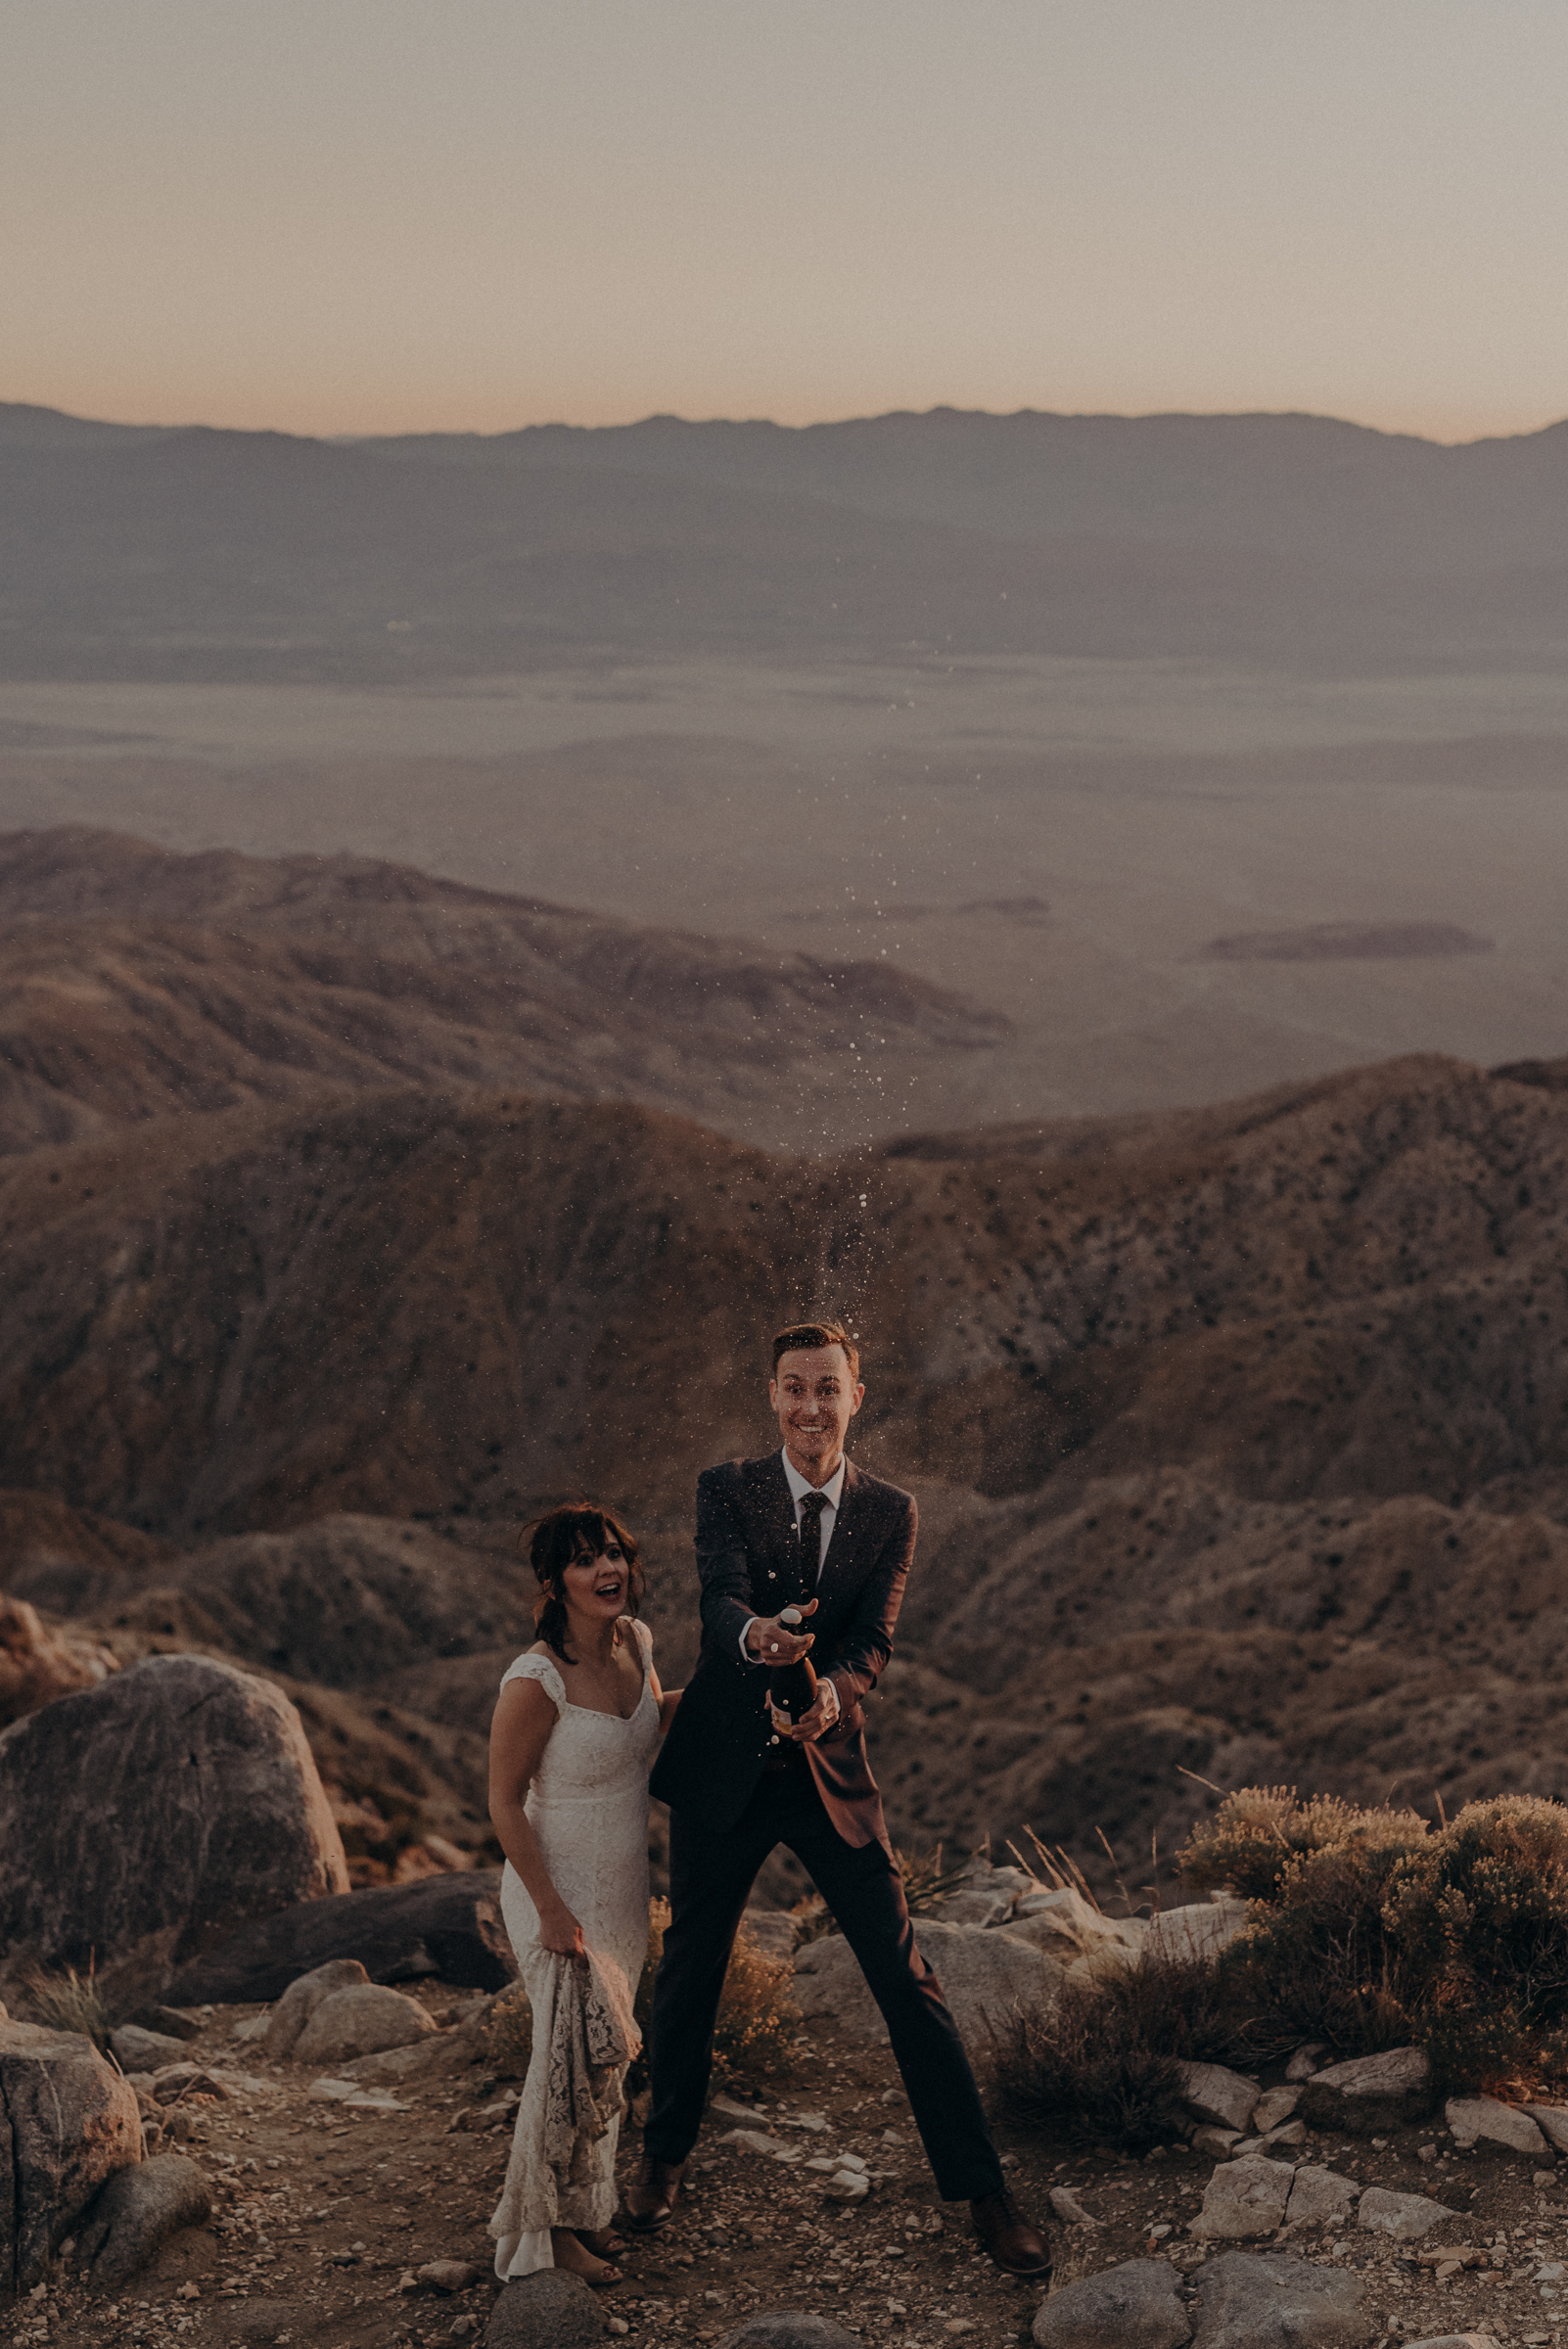 Joshua Tree Elopement - Los Angeles Wedding Photographers - IsaiahAndTaylor.com-114.jpg